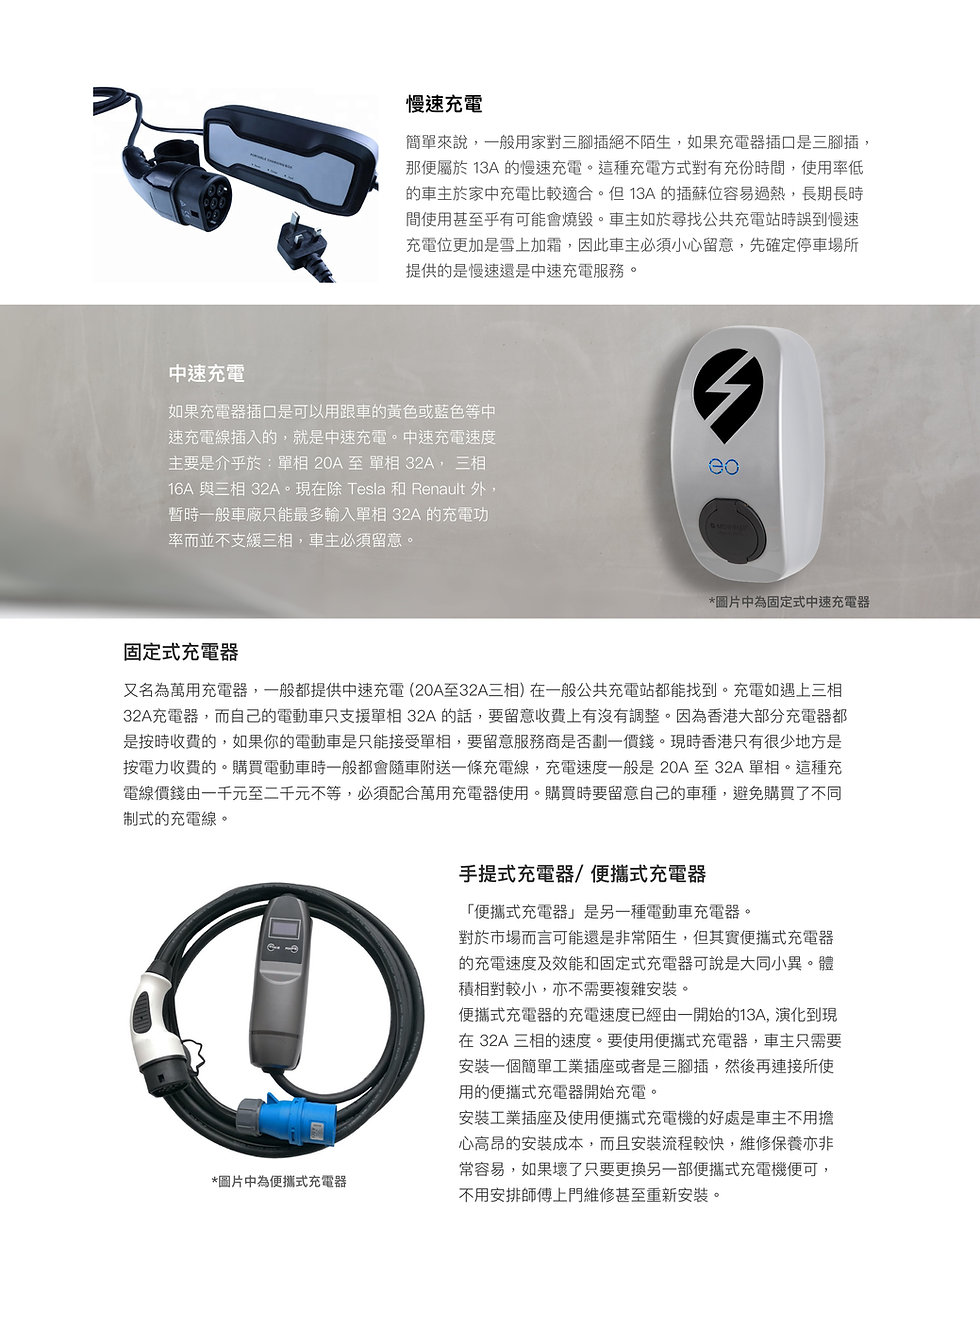 Charger Level Explanation-01.jpg